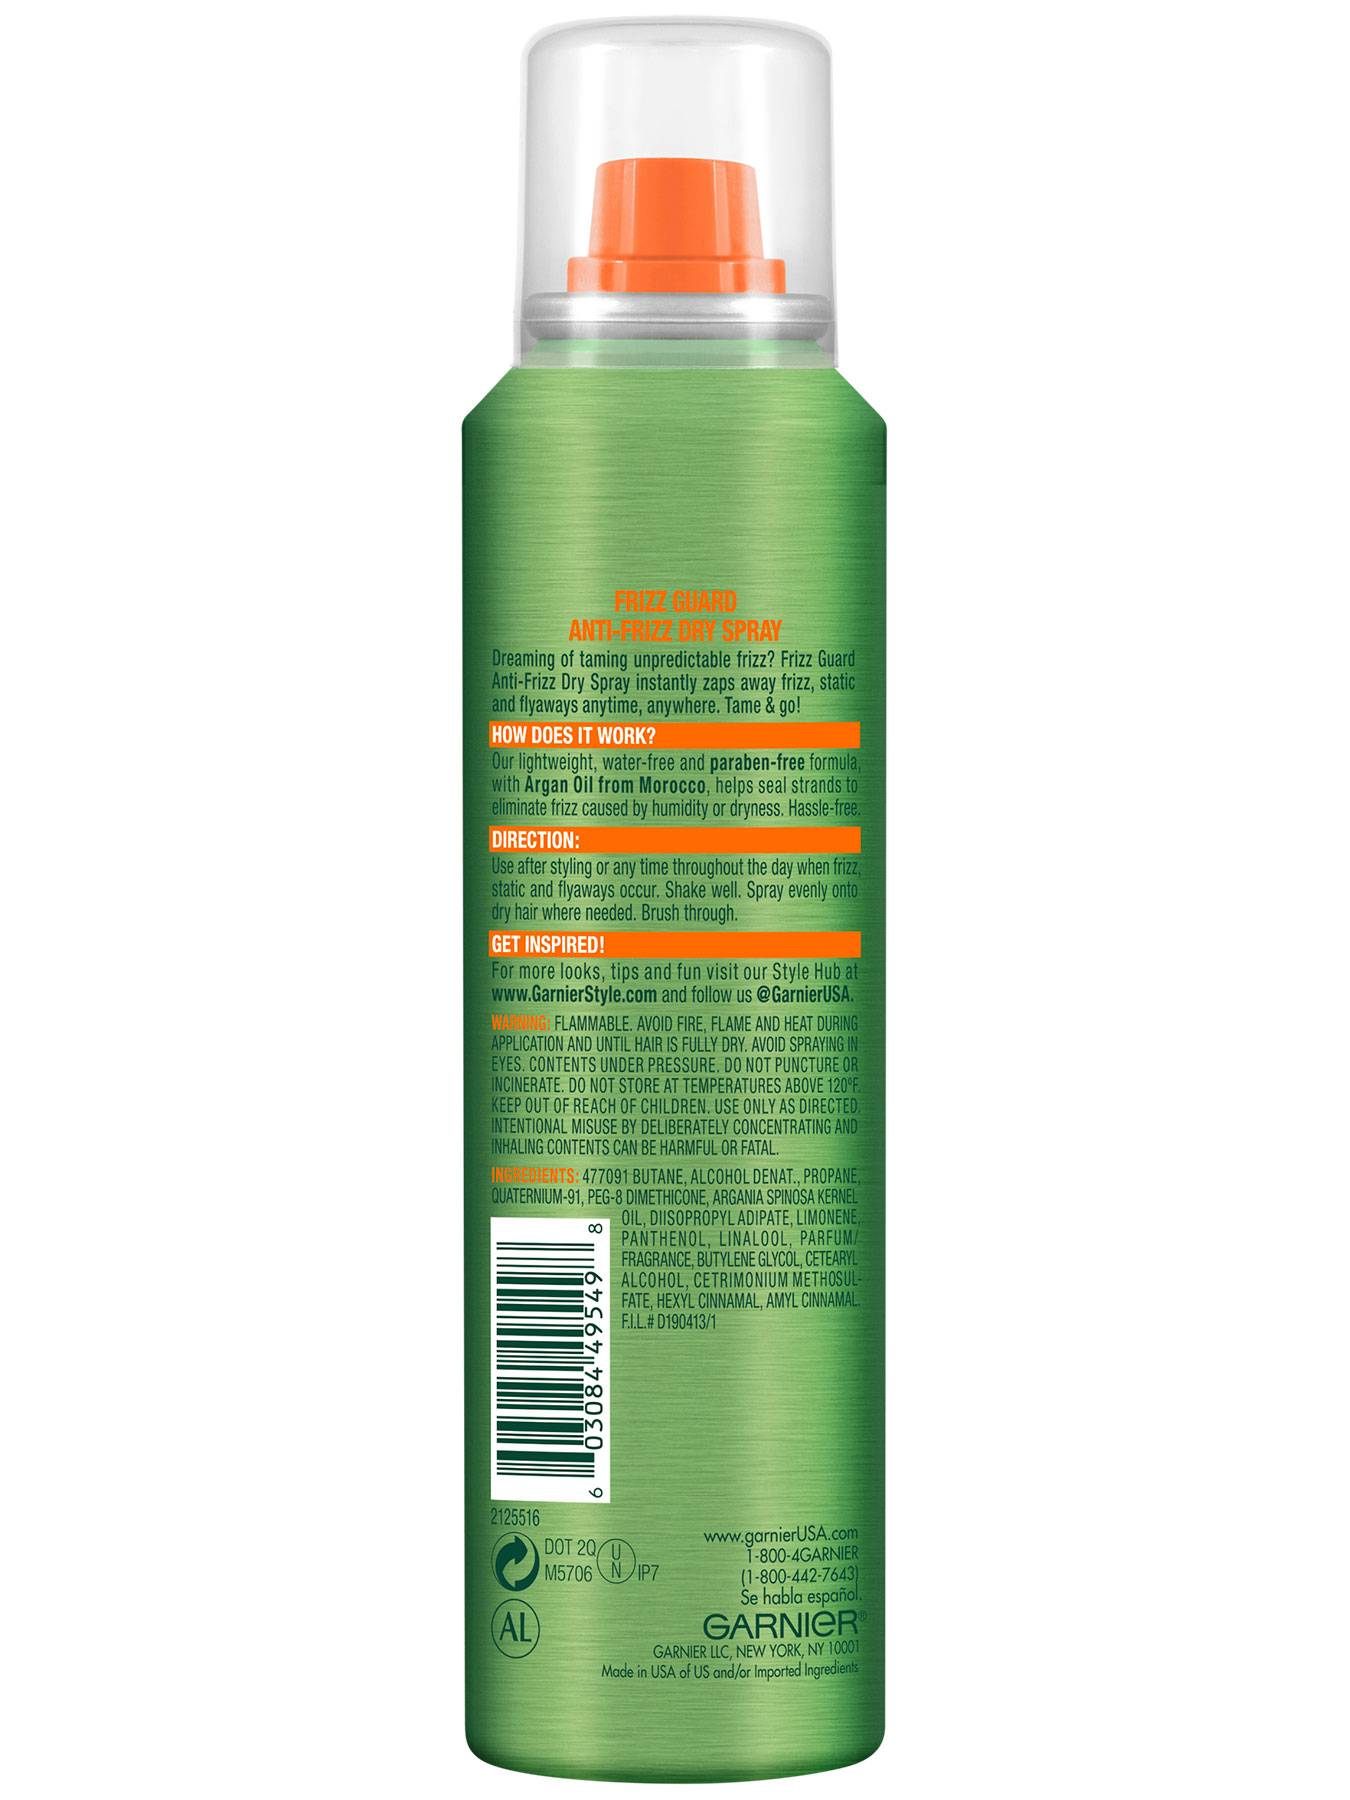 Back view of Frizz Guard Anti-Frizz Dry Spray.